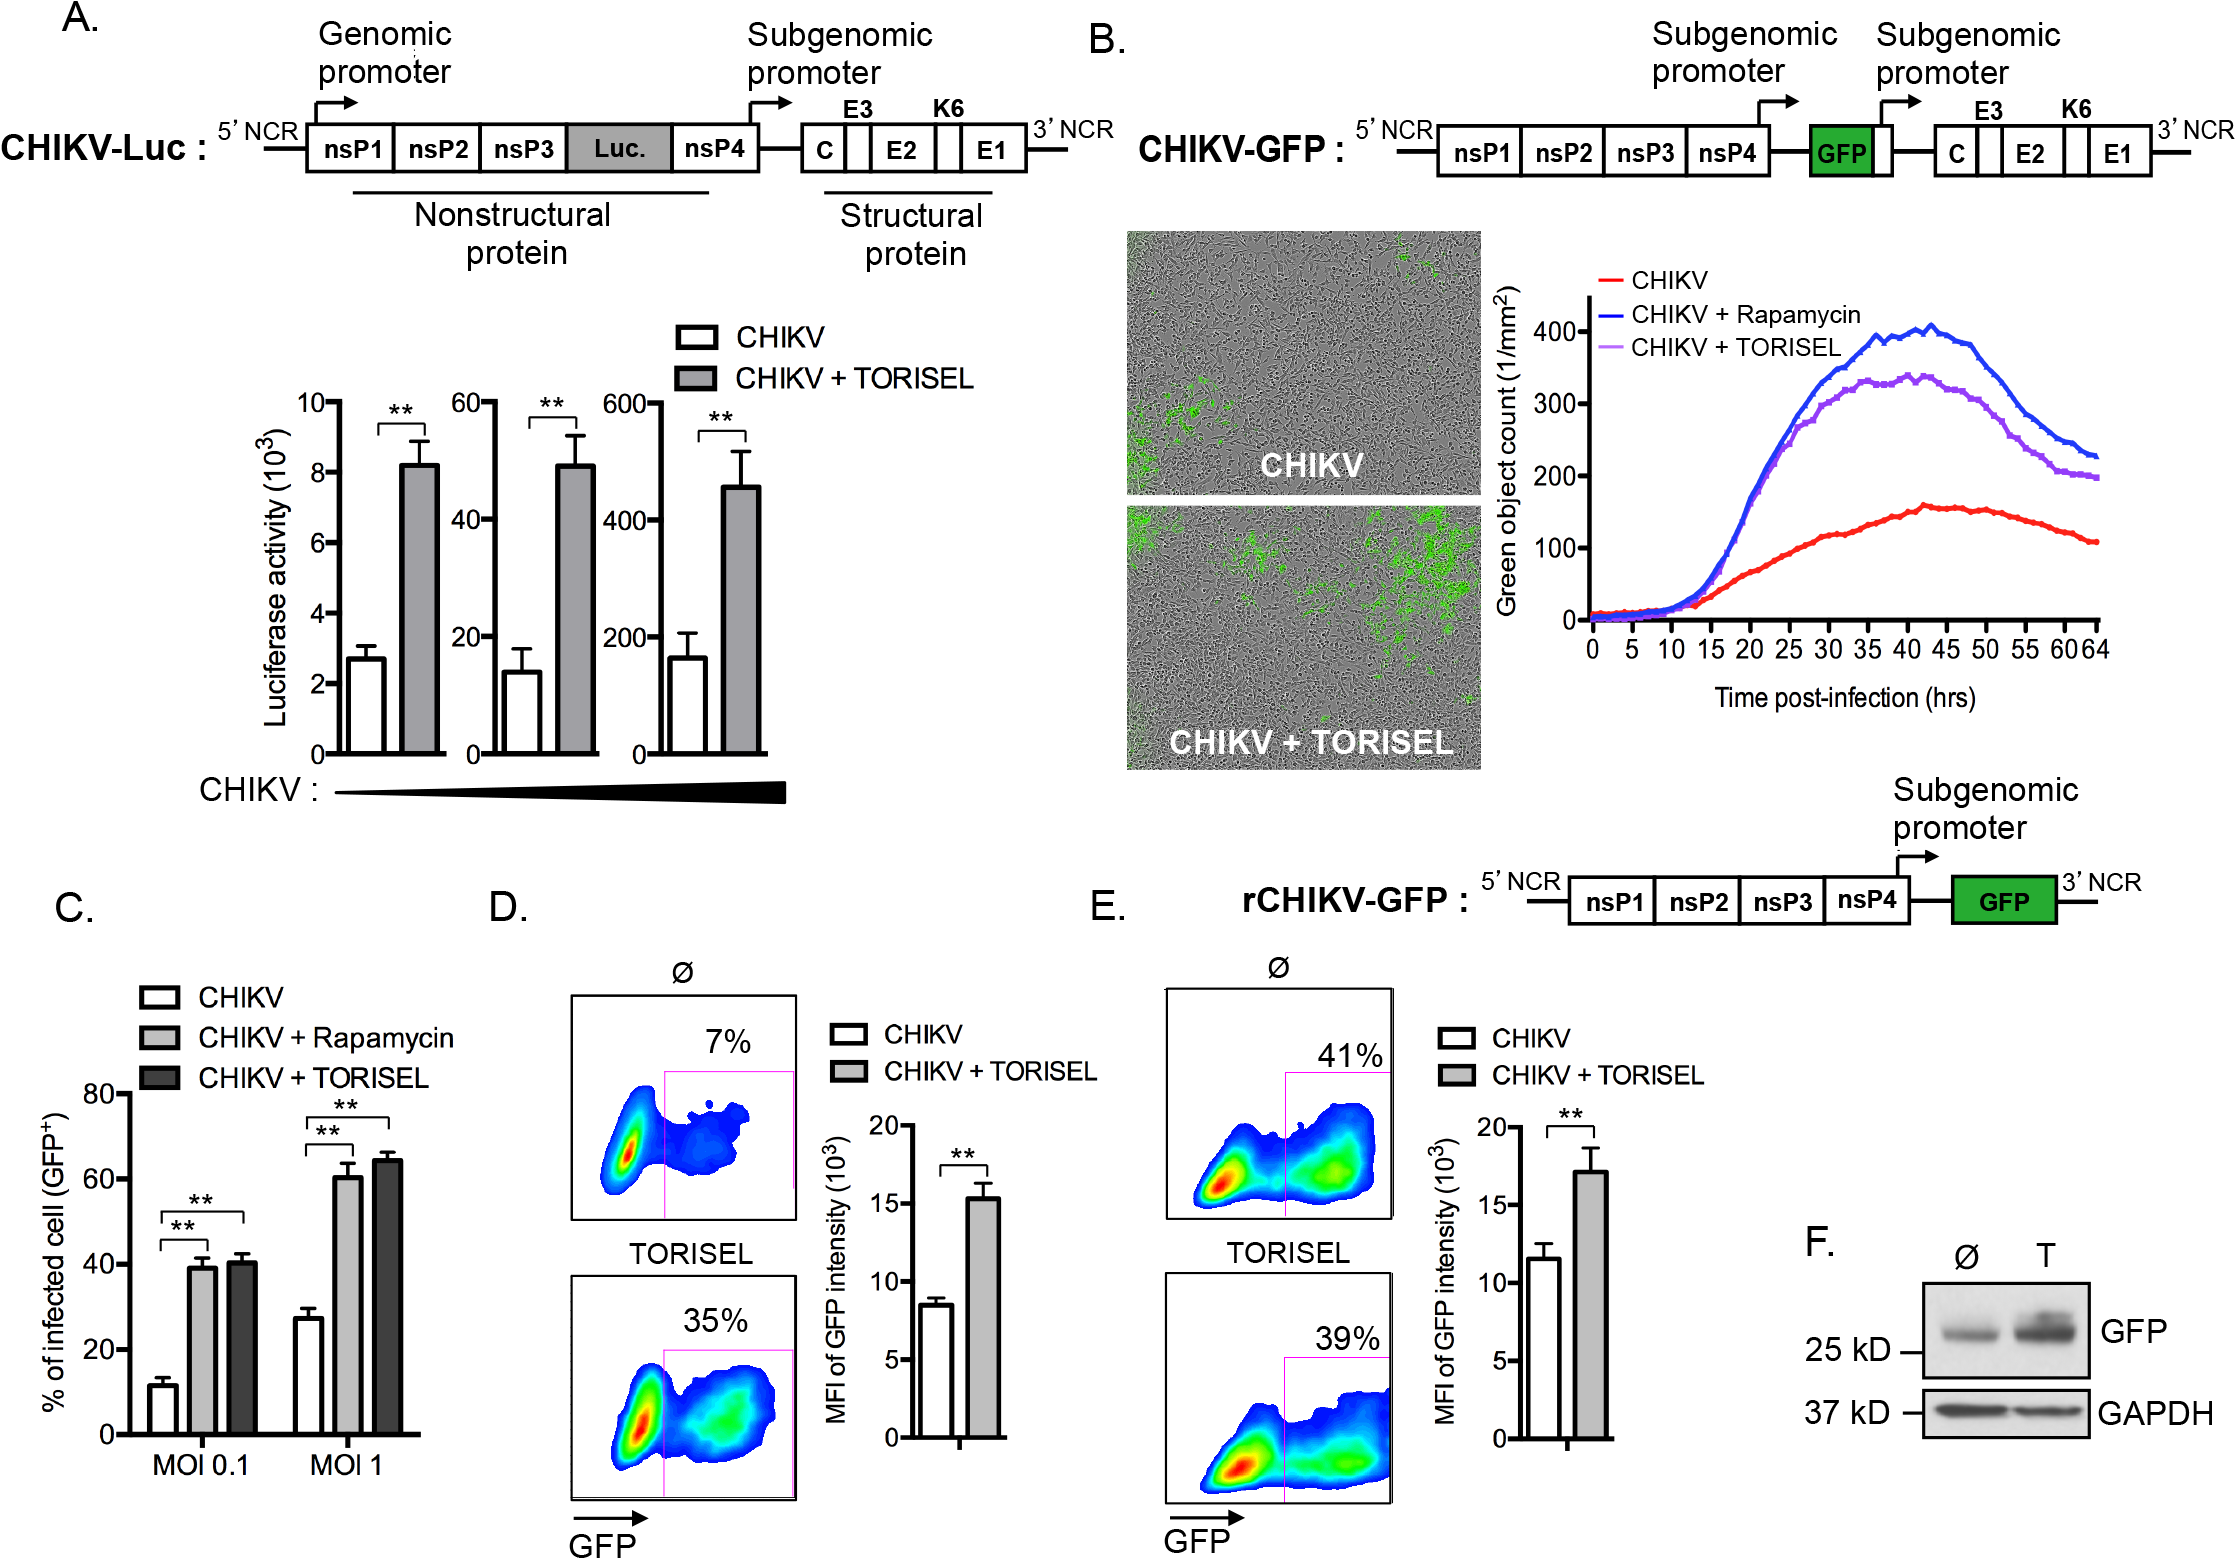 mTORC1 inhibitors enhance translation of both structural and non-structural CHIKV proteins.